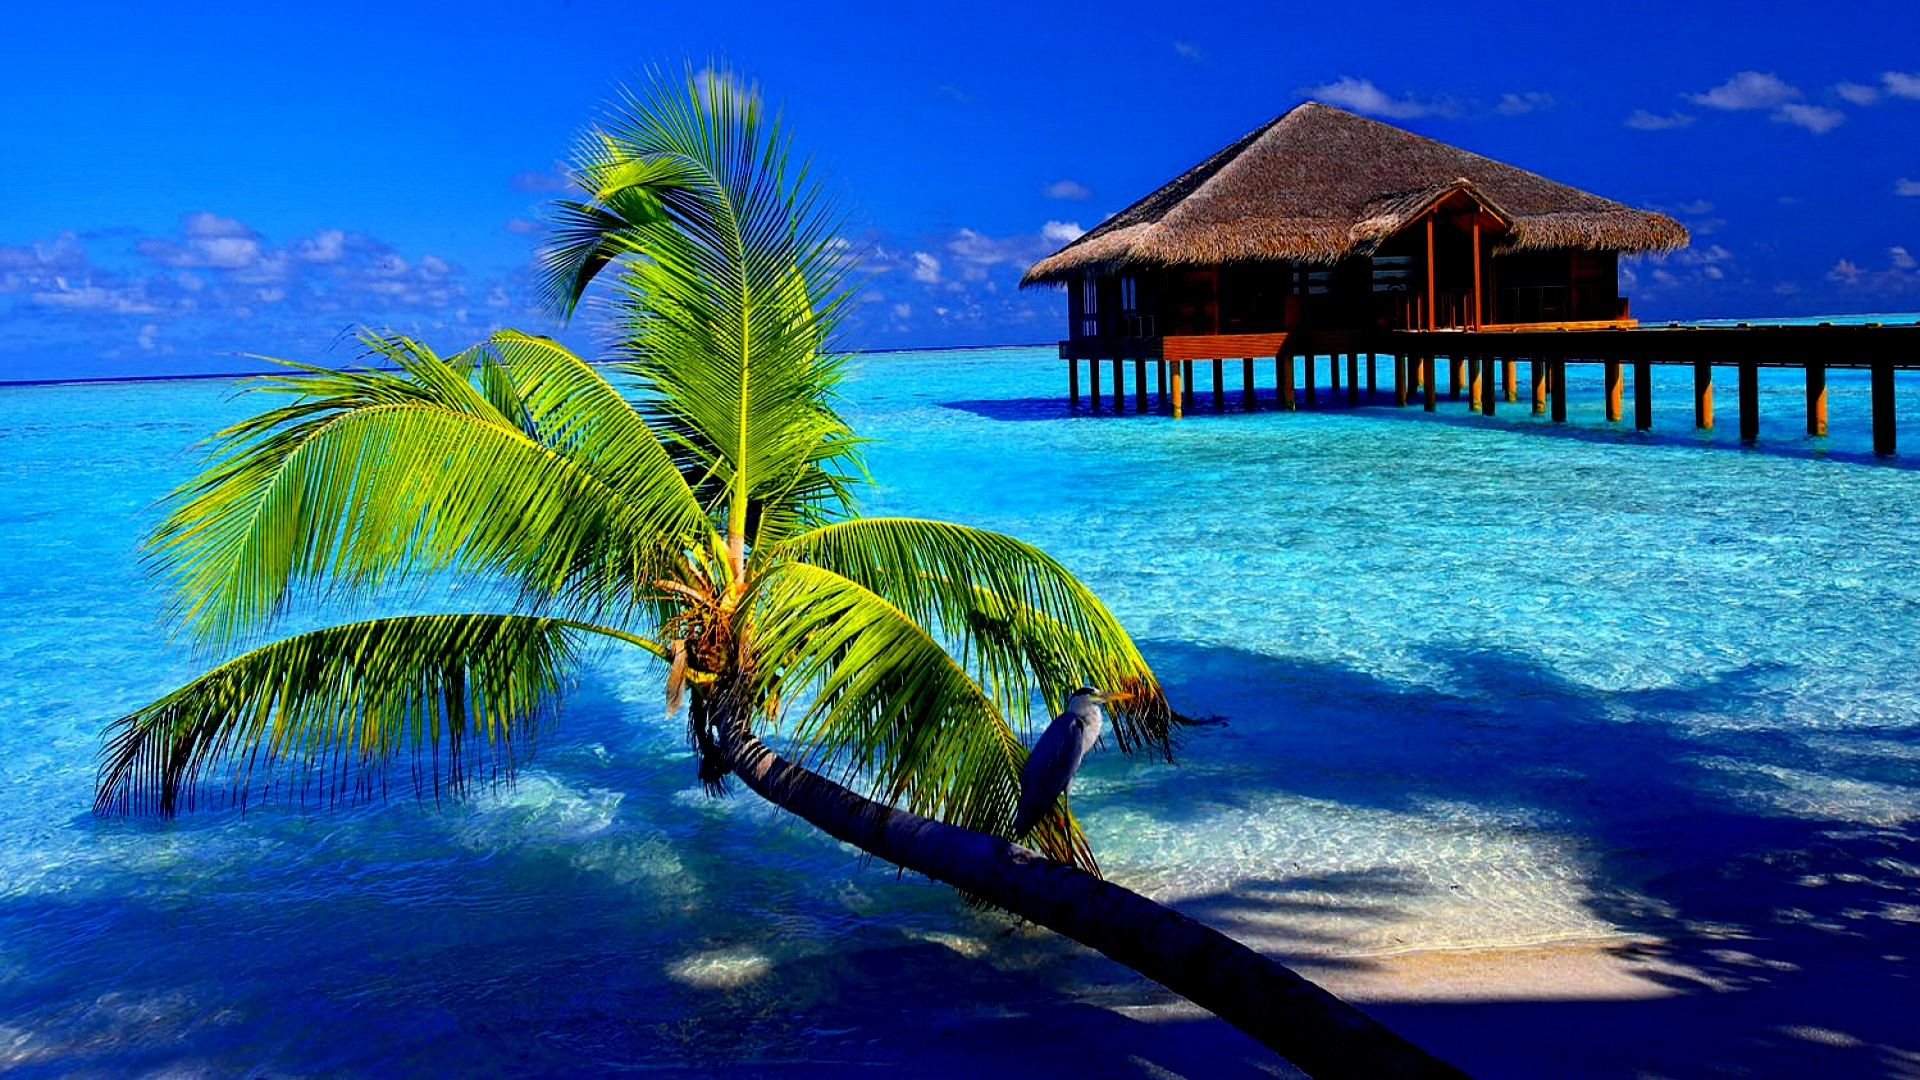 Tropical Full HD Wallpaper and Background Image 1920x1080